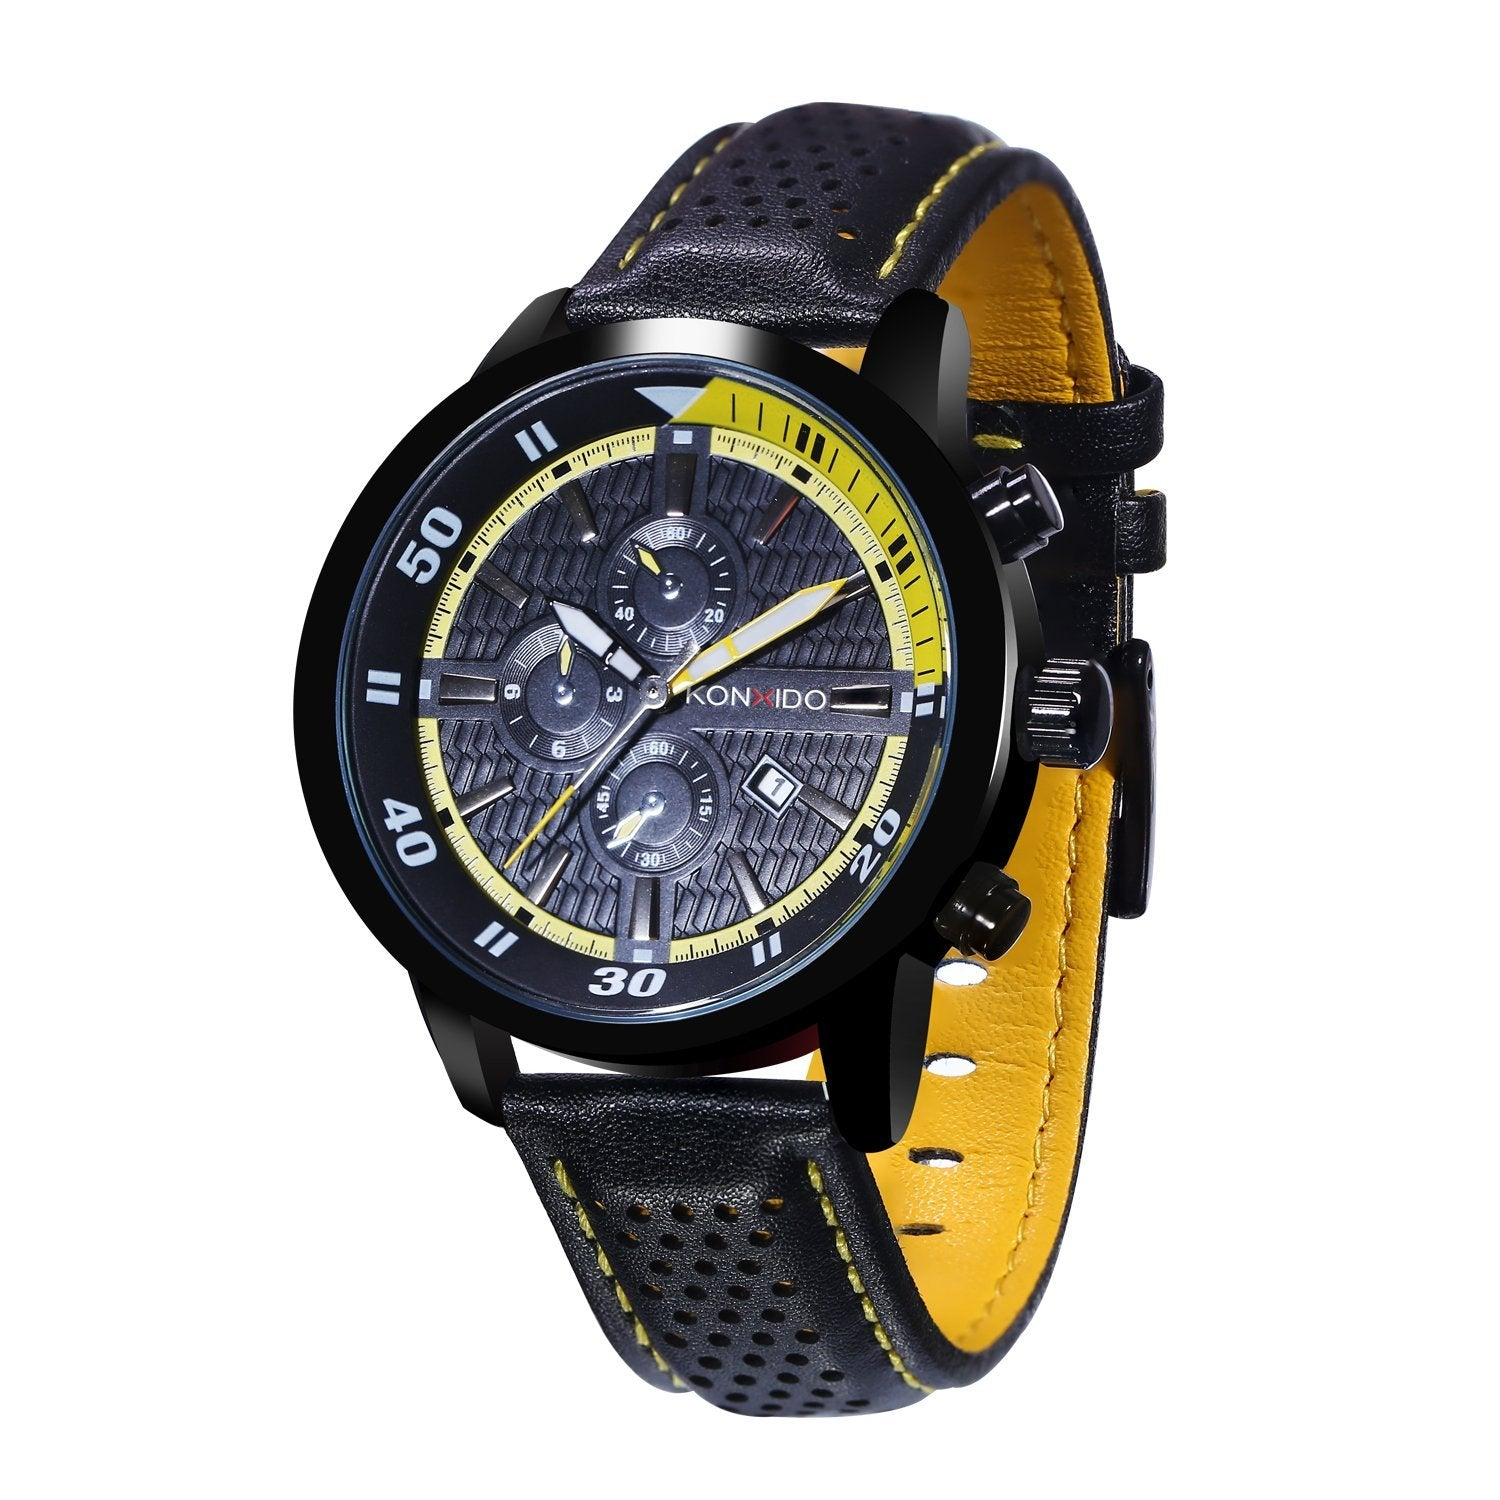 sku products steel en pdpzoom analog stainless fossil watches nate aemresponsive watch black us main chronograph